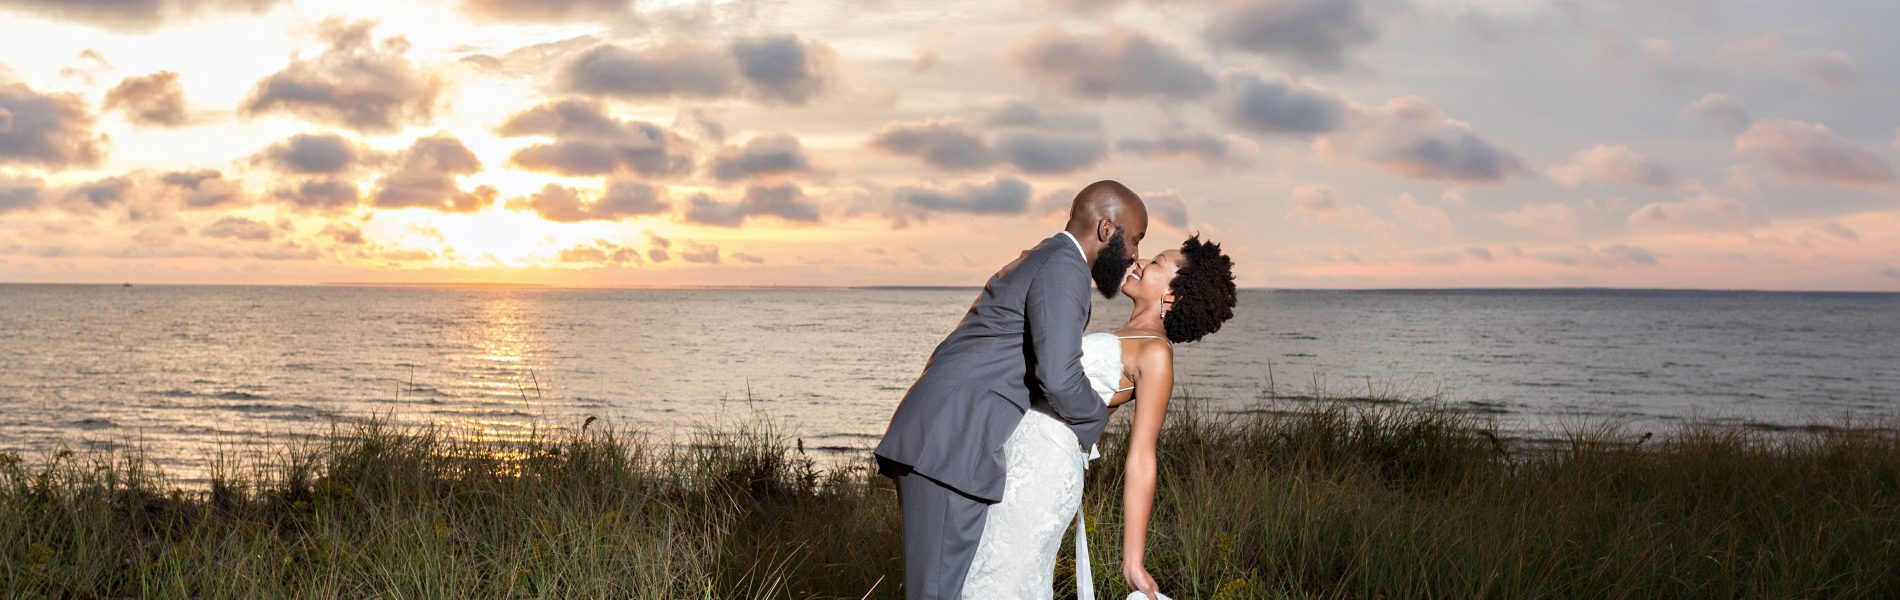 A Memorable Wedding in Cape Cod at Sea Crest Beach Hotel